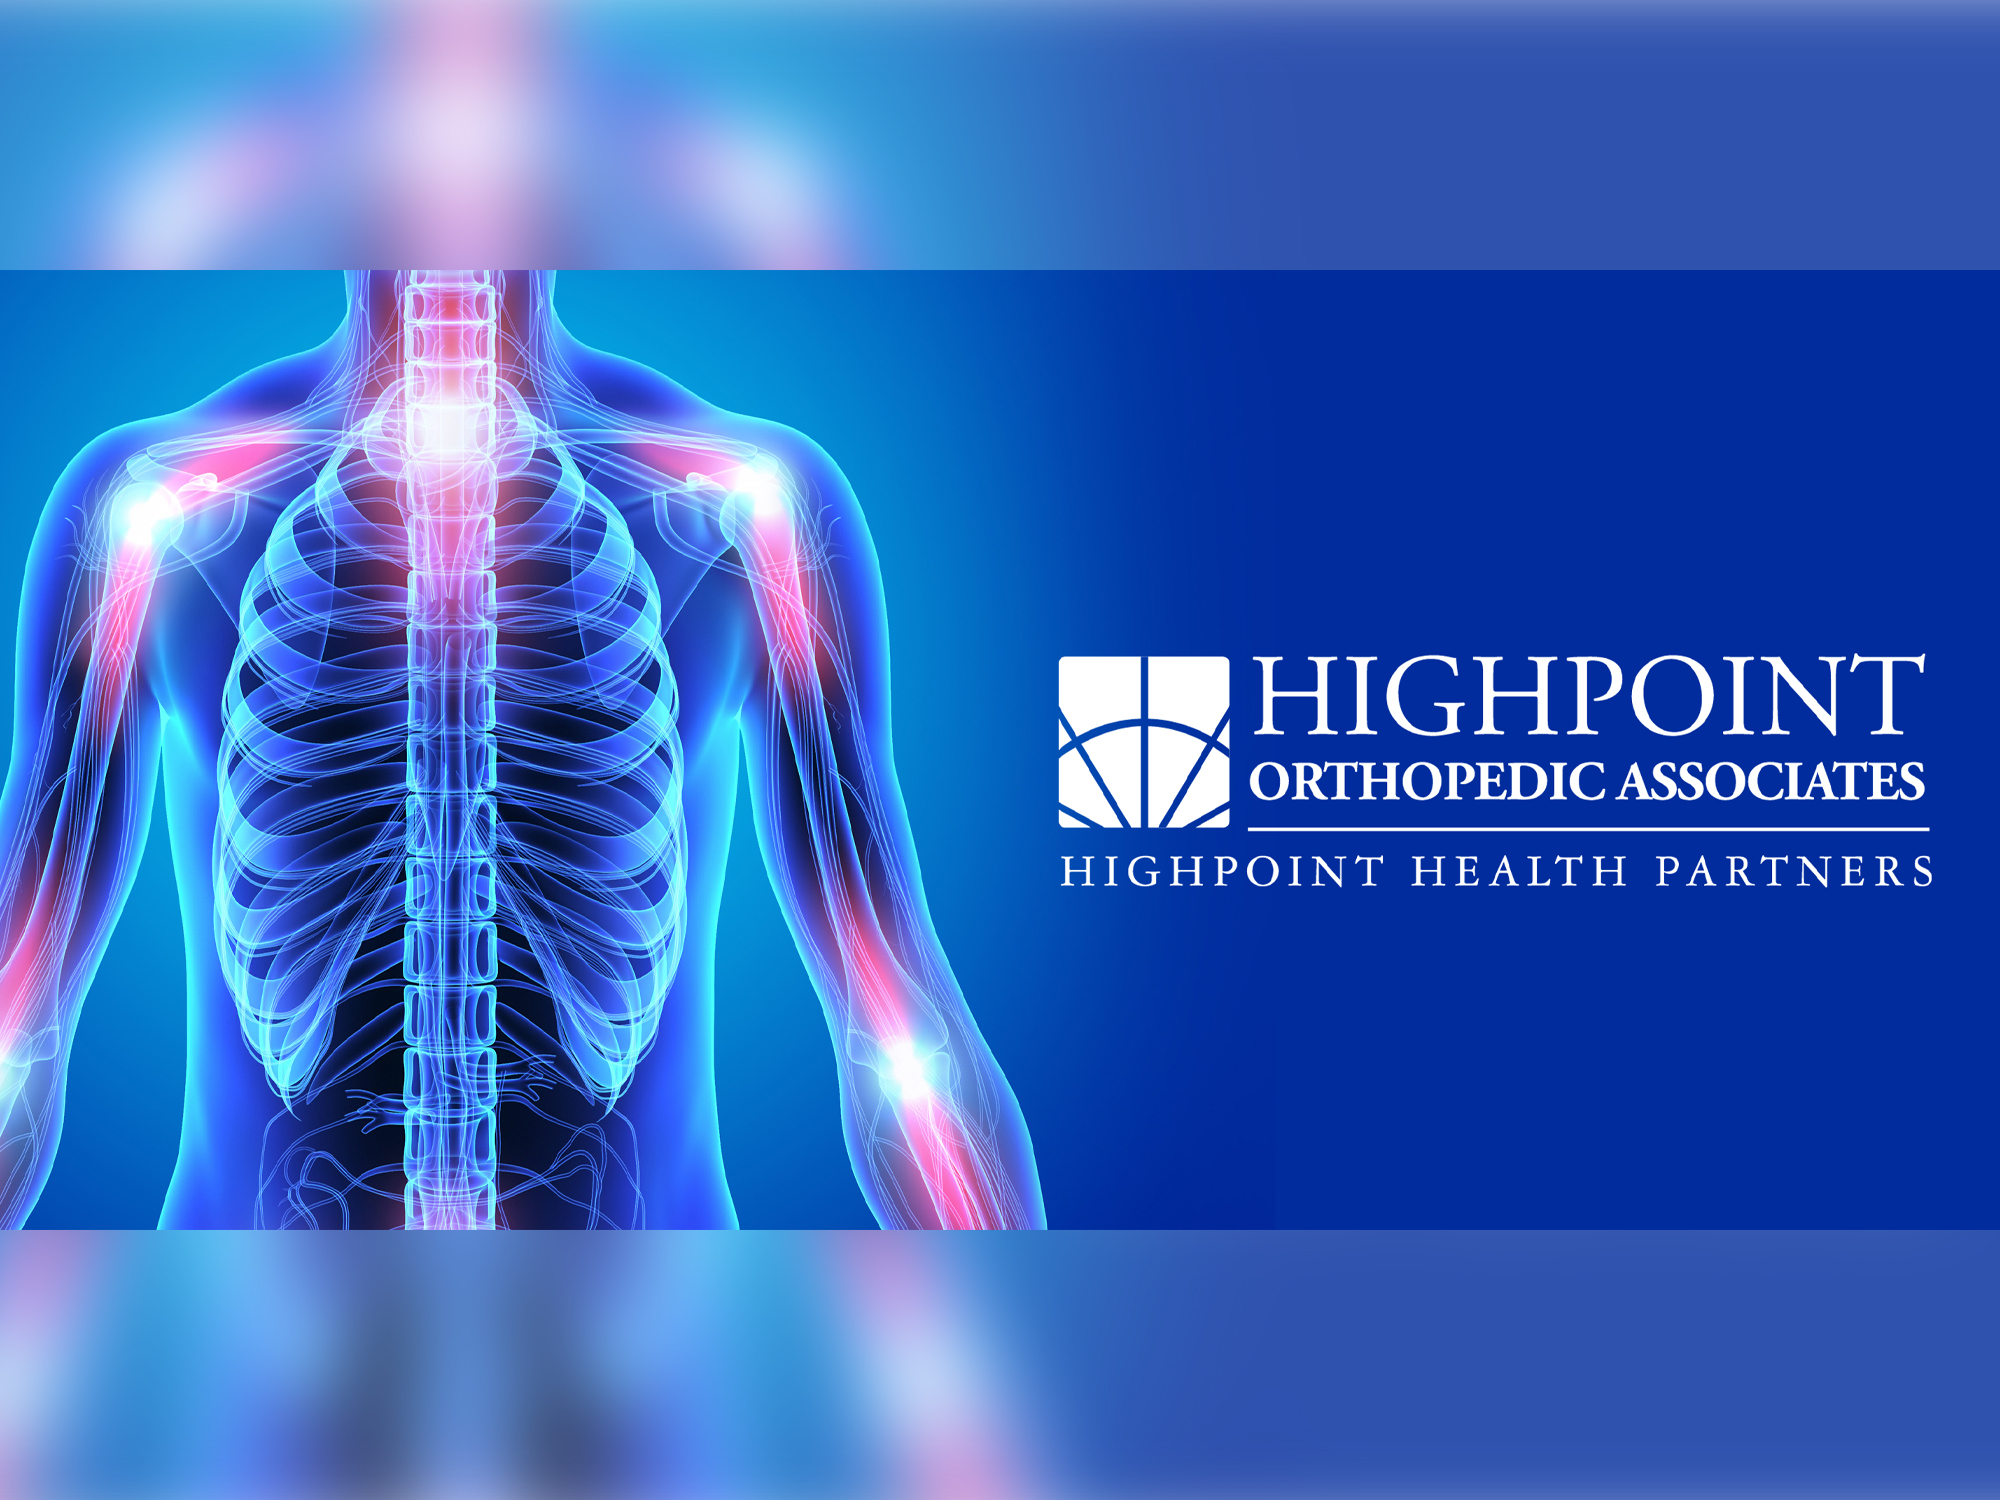 HighPoint Orthopedic Associates Welcome